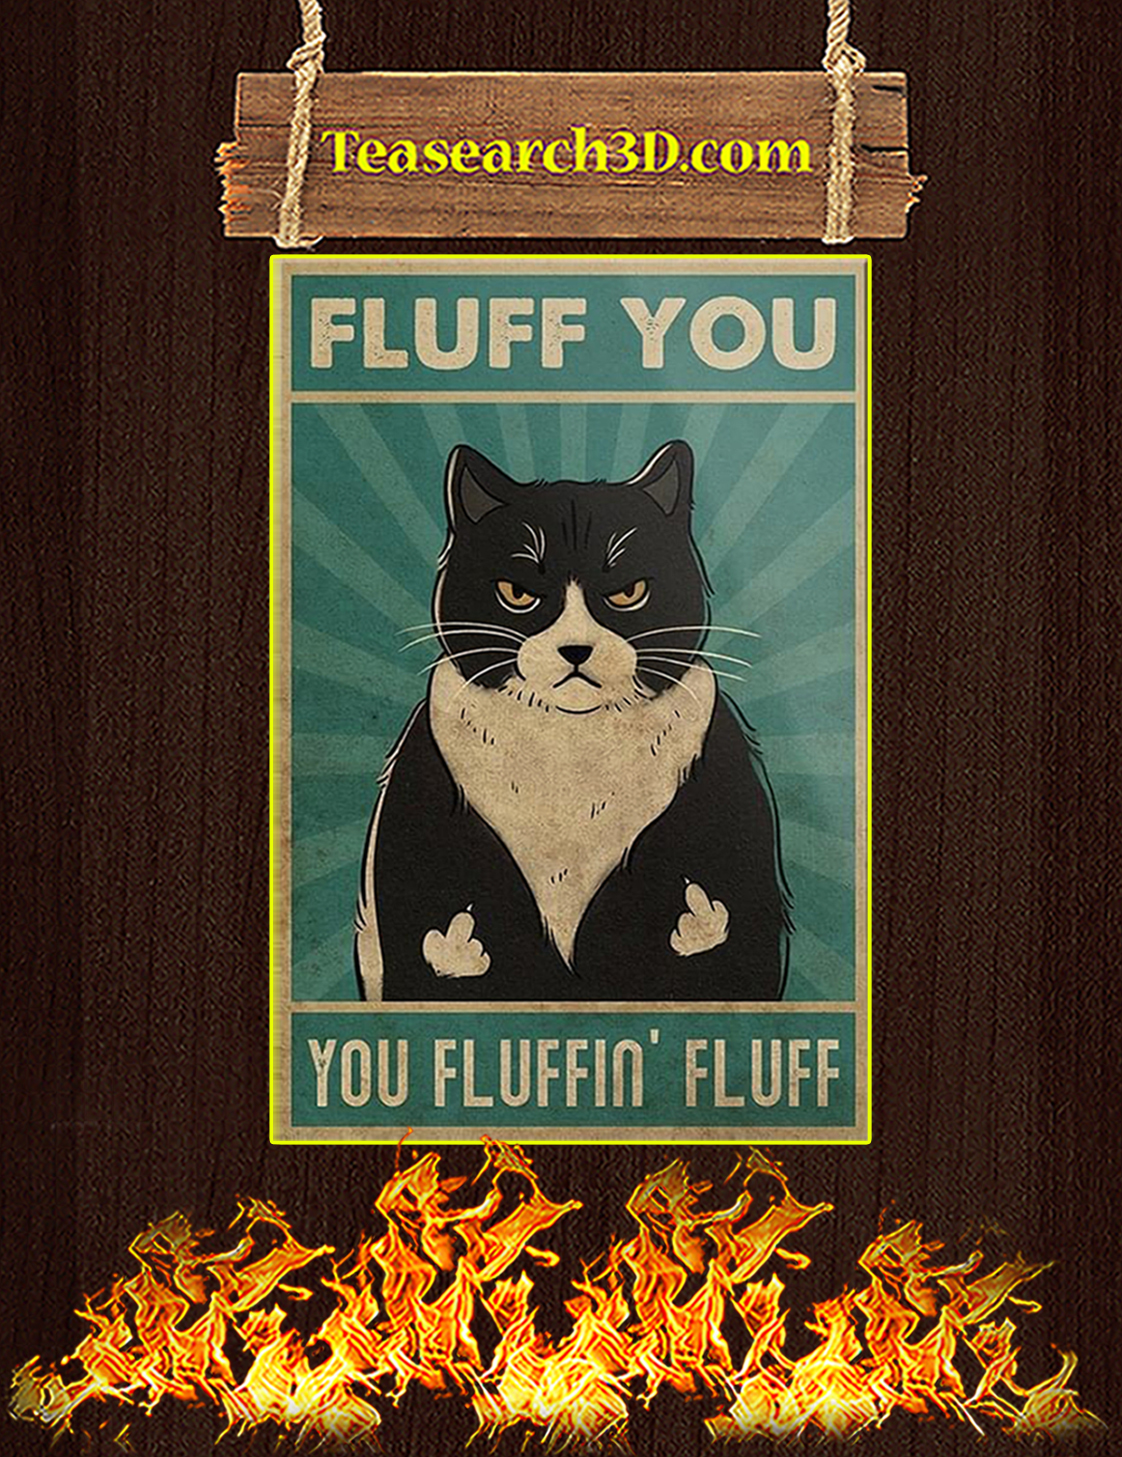 Black cat fluff you you fluffin' fluff canvas prints large